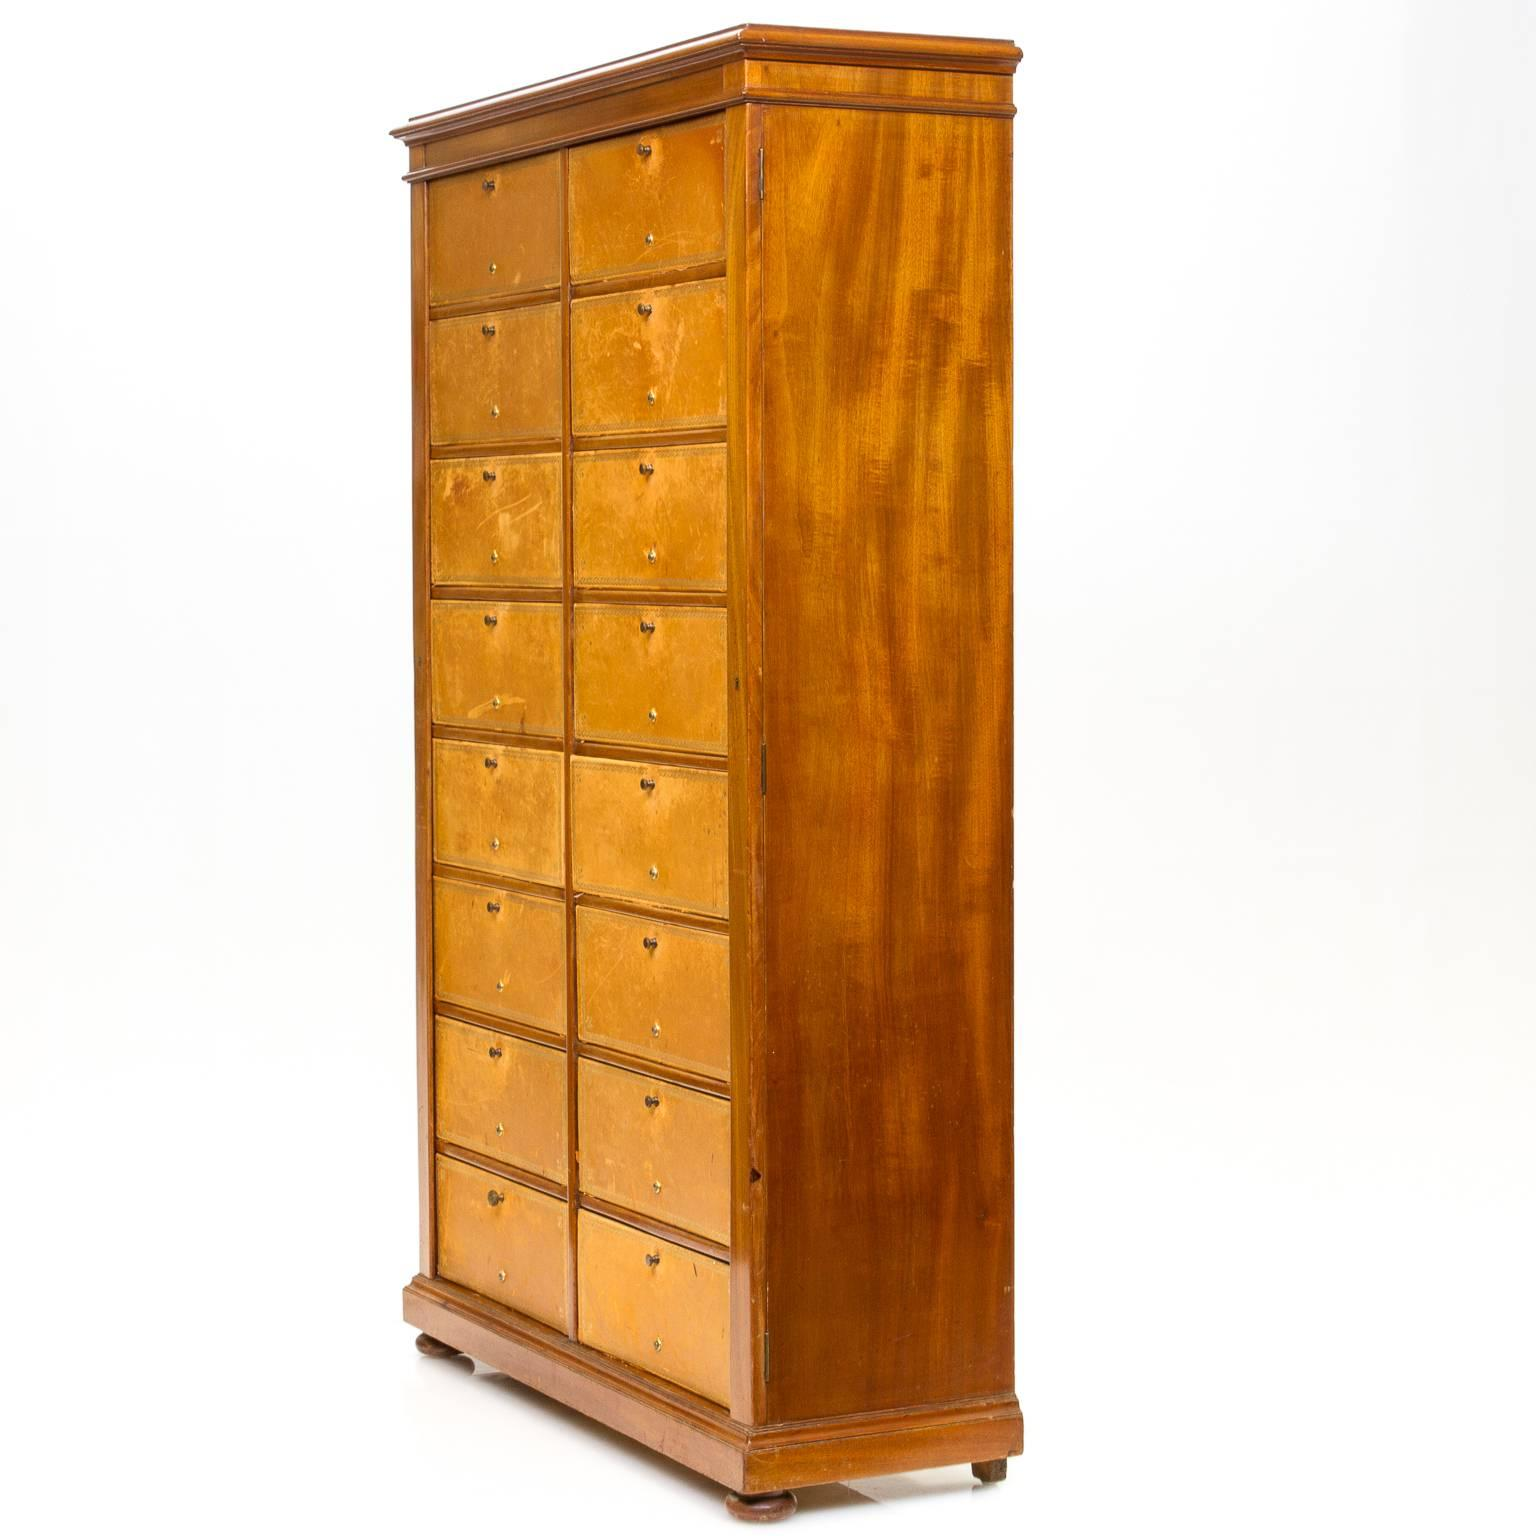 sc 1 st  1stDibs & English Mahogany File Cabinet For Sale at 1stdibs